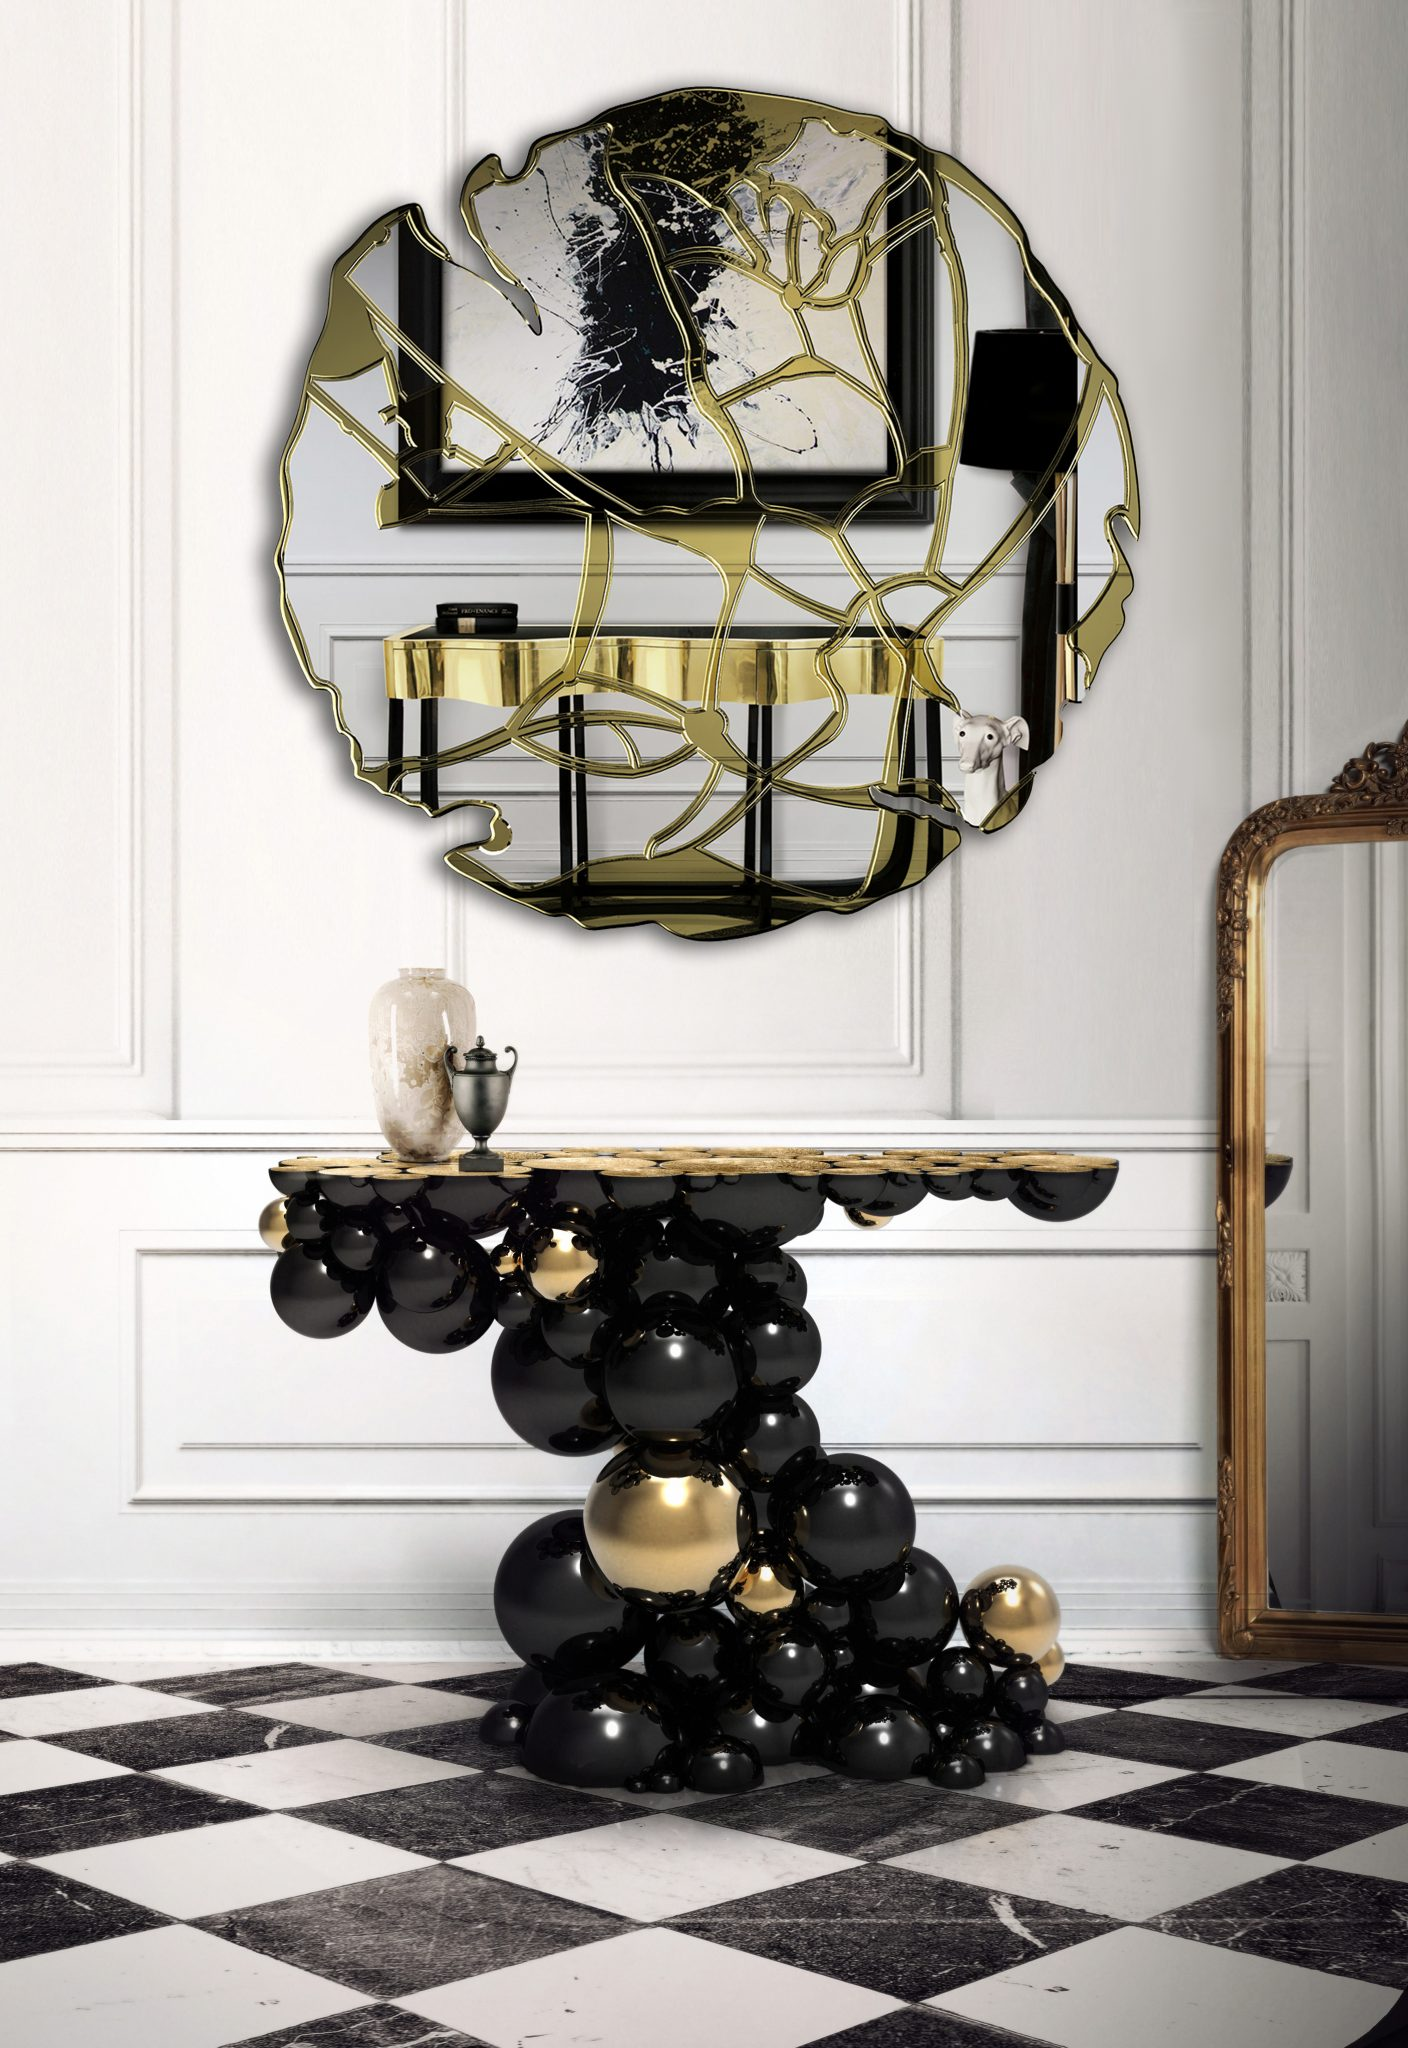 The Most Exclusive Mirrors By Boca do Lobo mirrors The Most Exclusive Mirrors By Boca do Lobo glance 02